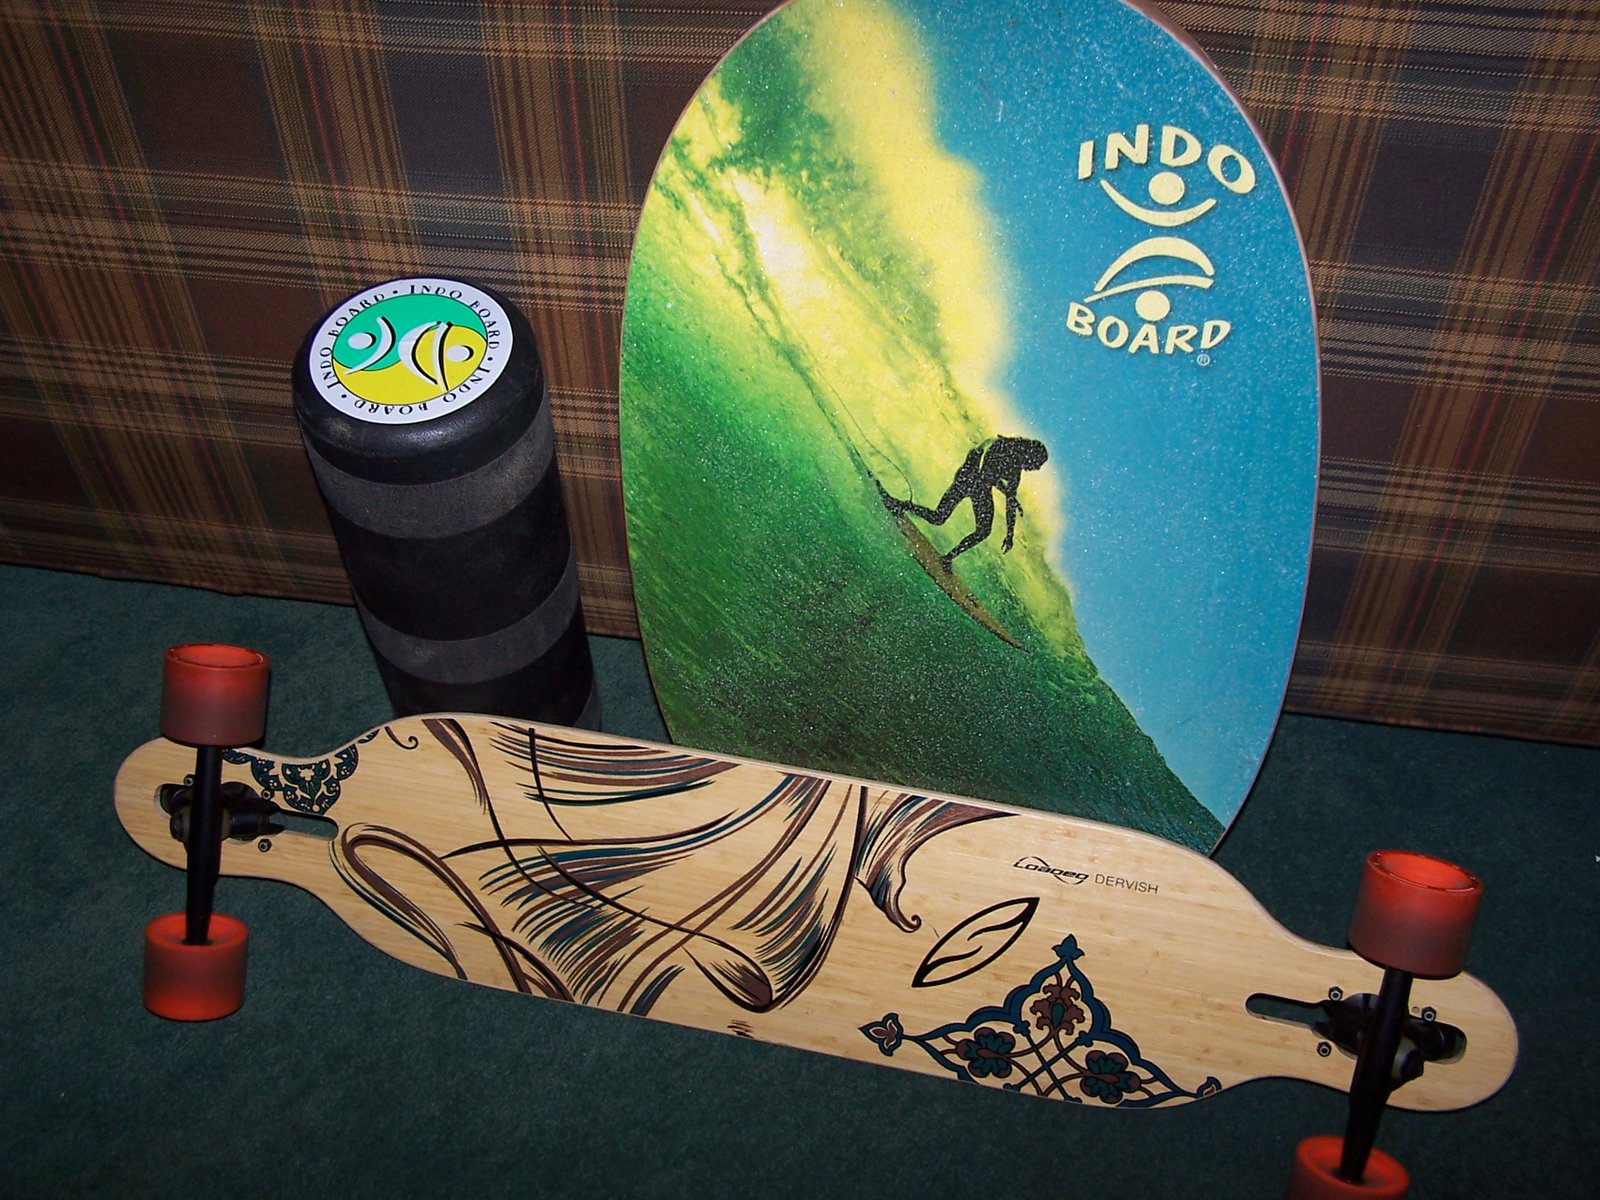 loaded dervish and indo board